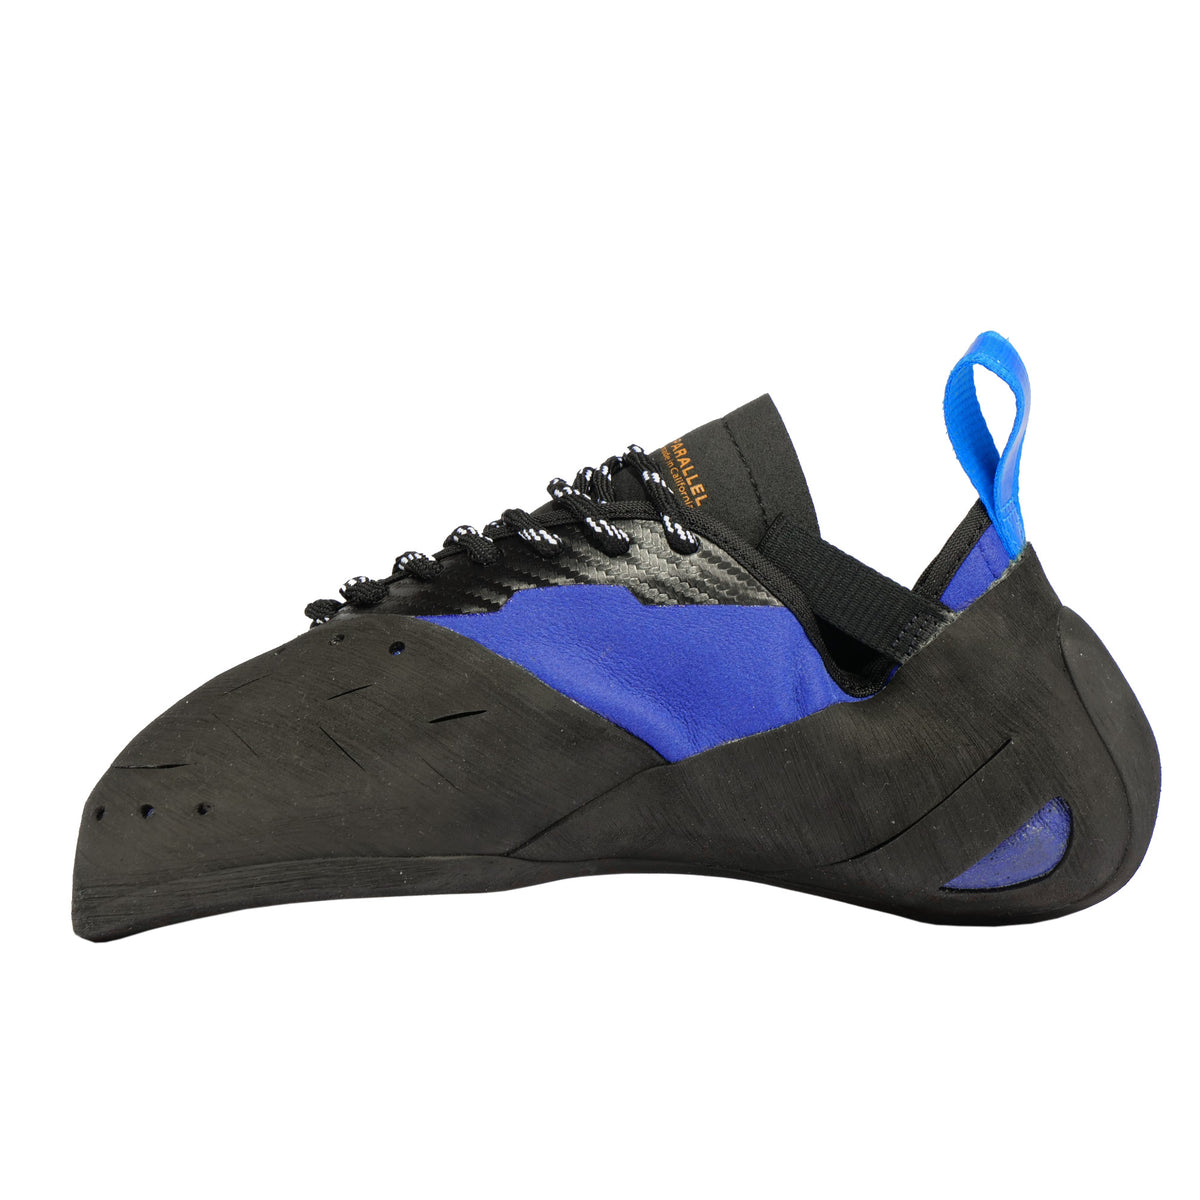 Inner side view of the Unparallel Sirius Lace climbing shoe showing the ribbed lacing system